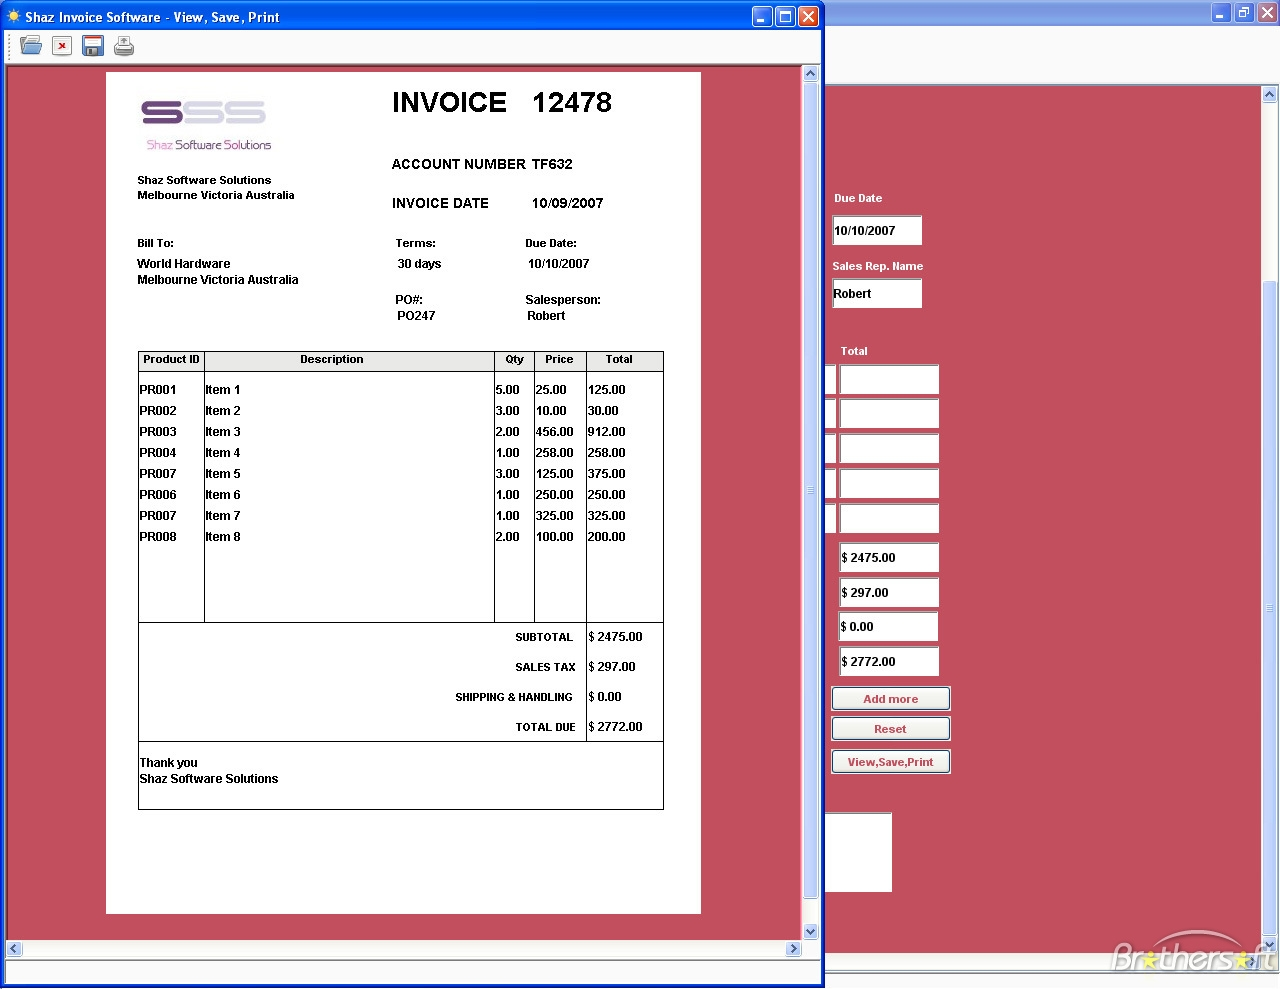 invoice software free download free shaz invoice software shaz invoice software 100 1280 X 989